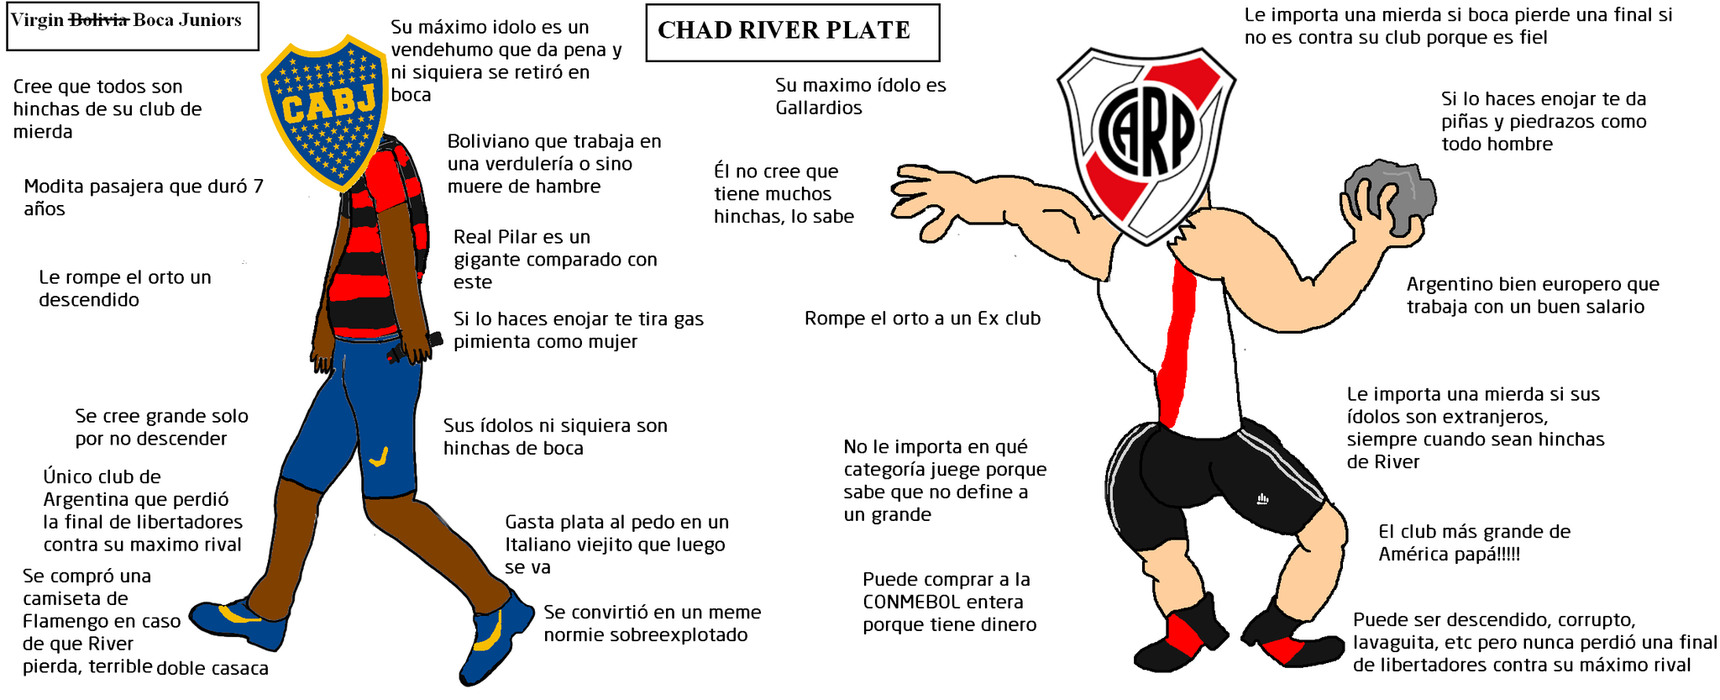 Virgin Bokita vs Chad River Plate - meme